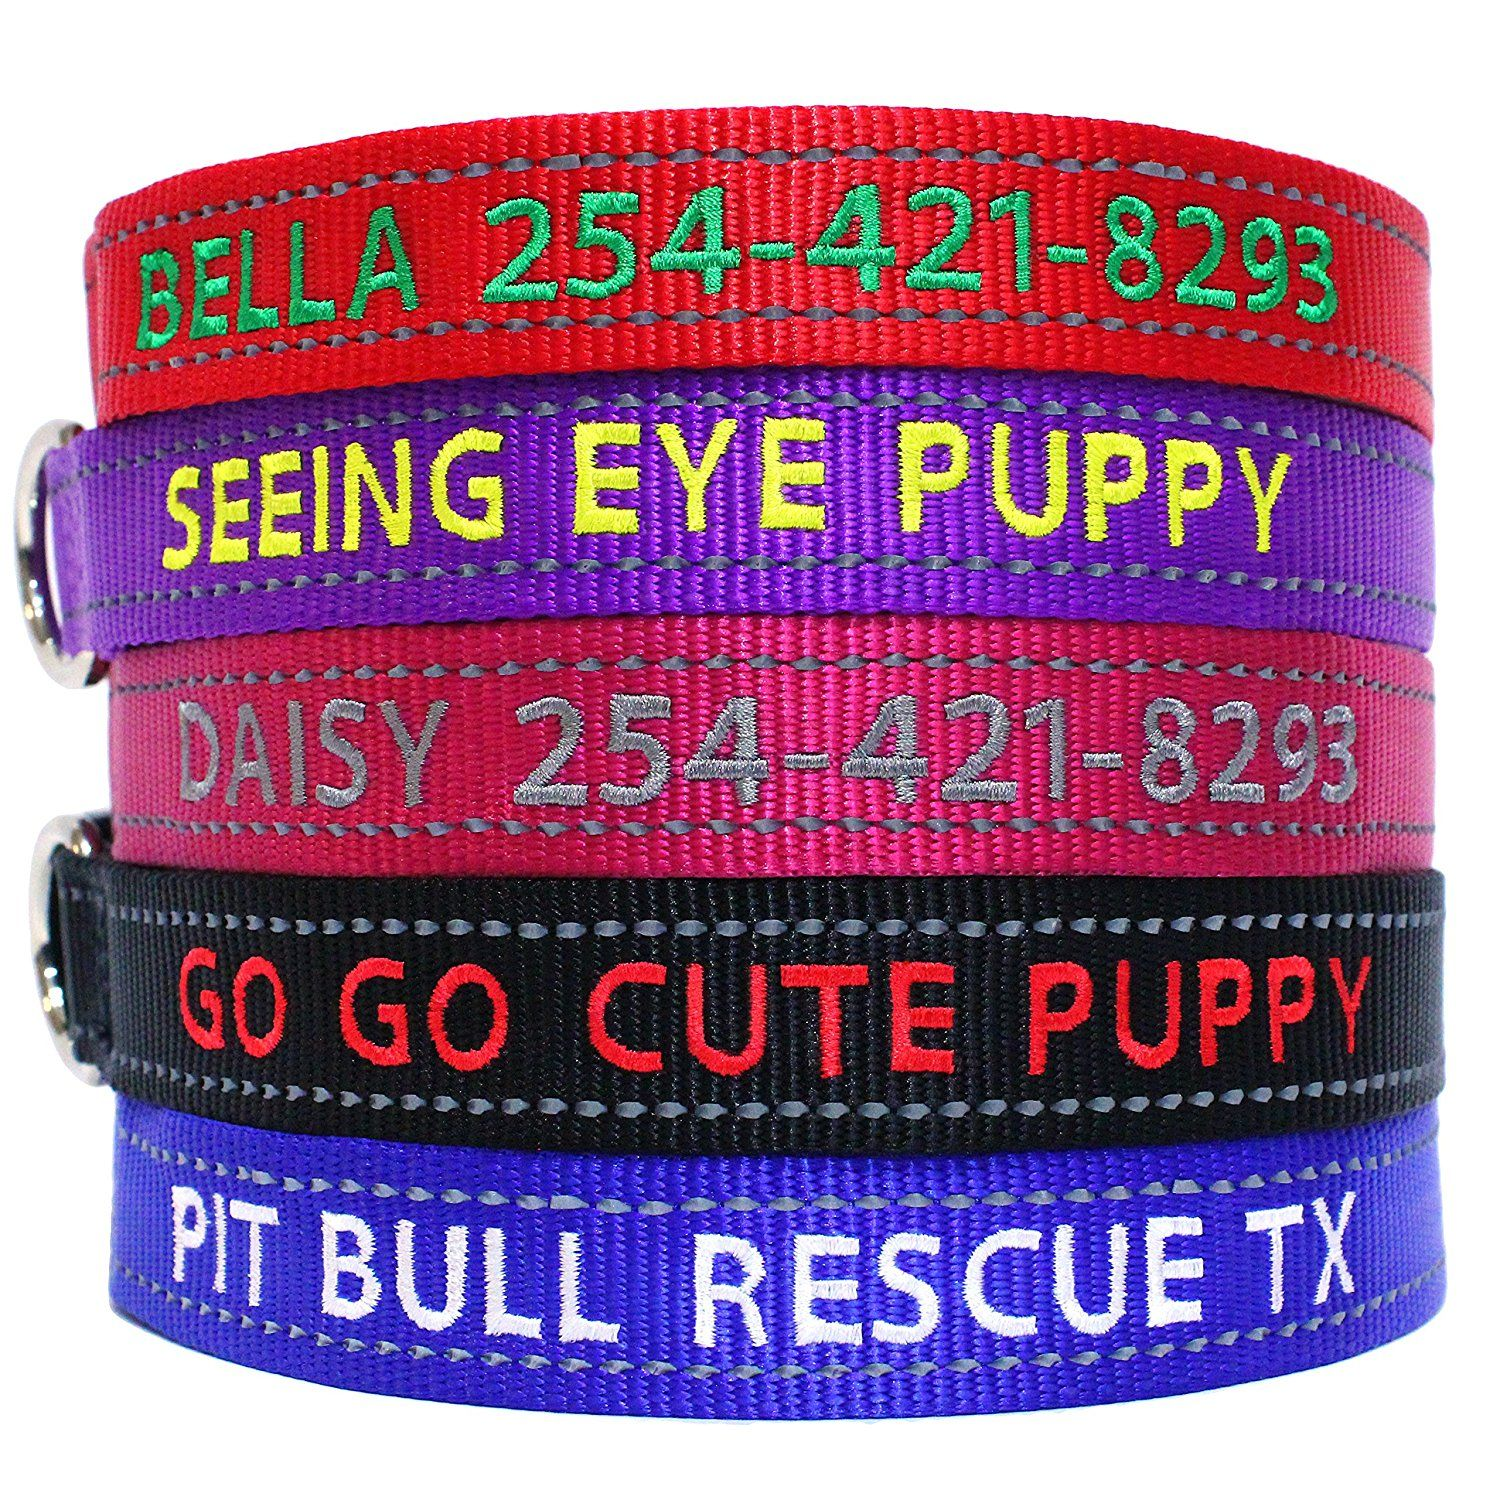 Go go cute puppy reflective personalized dog collars